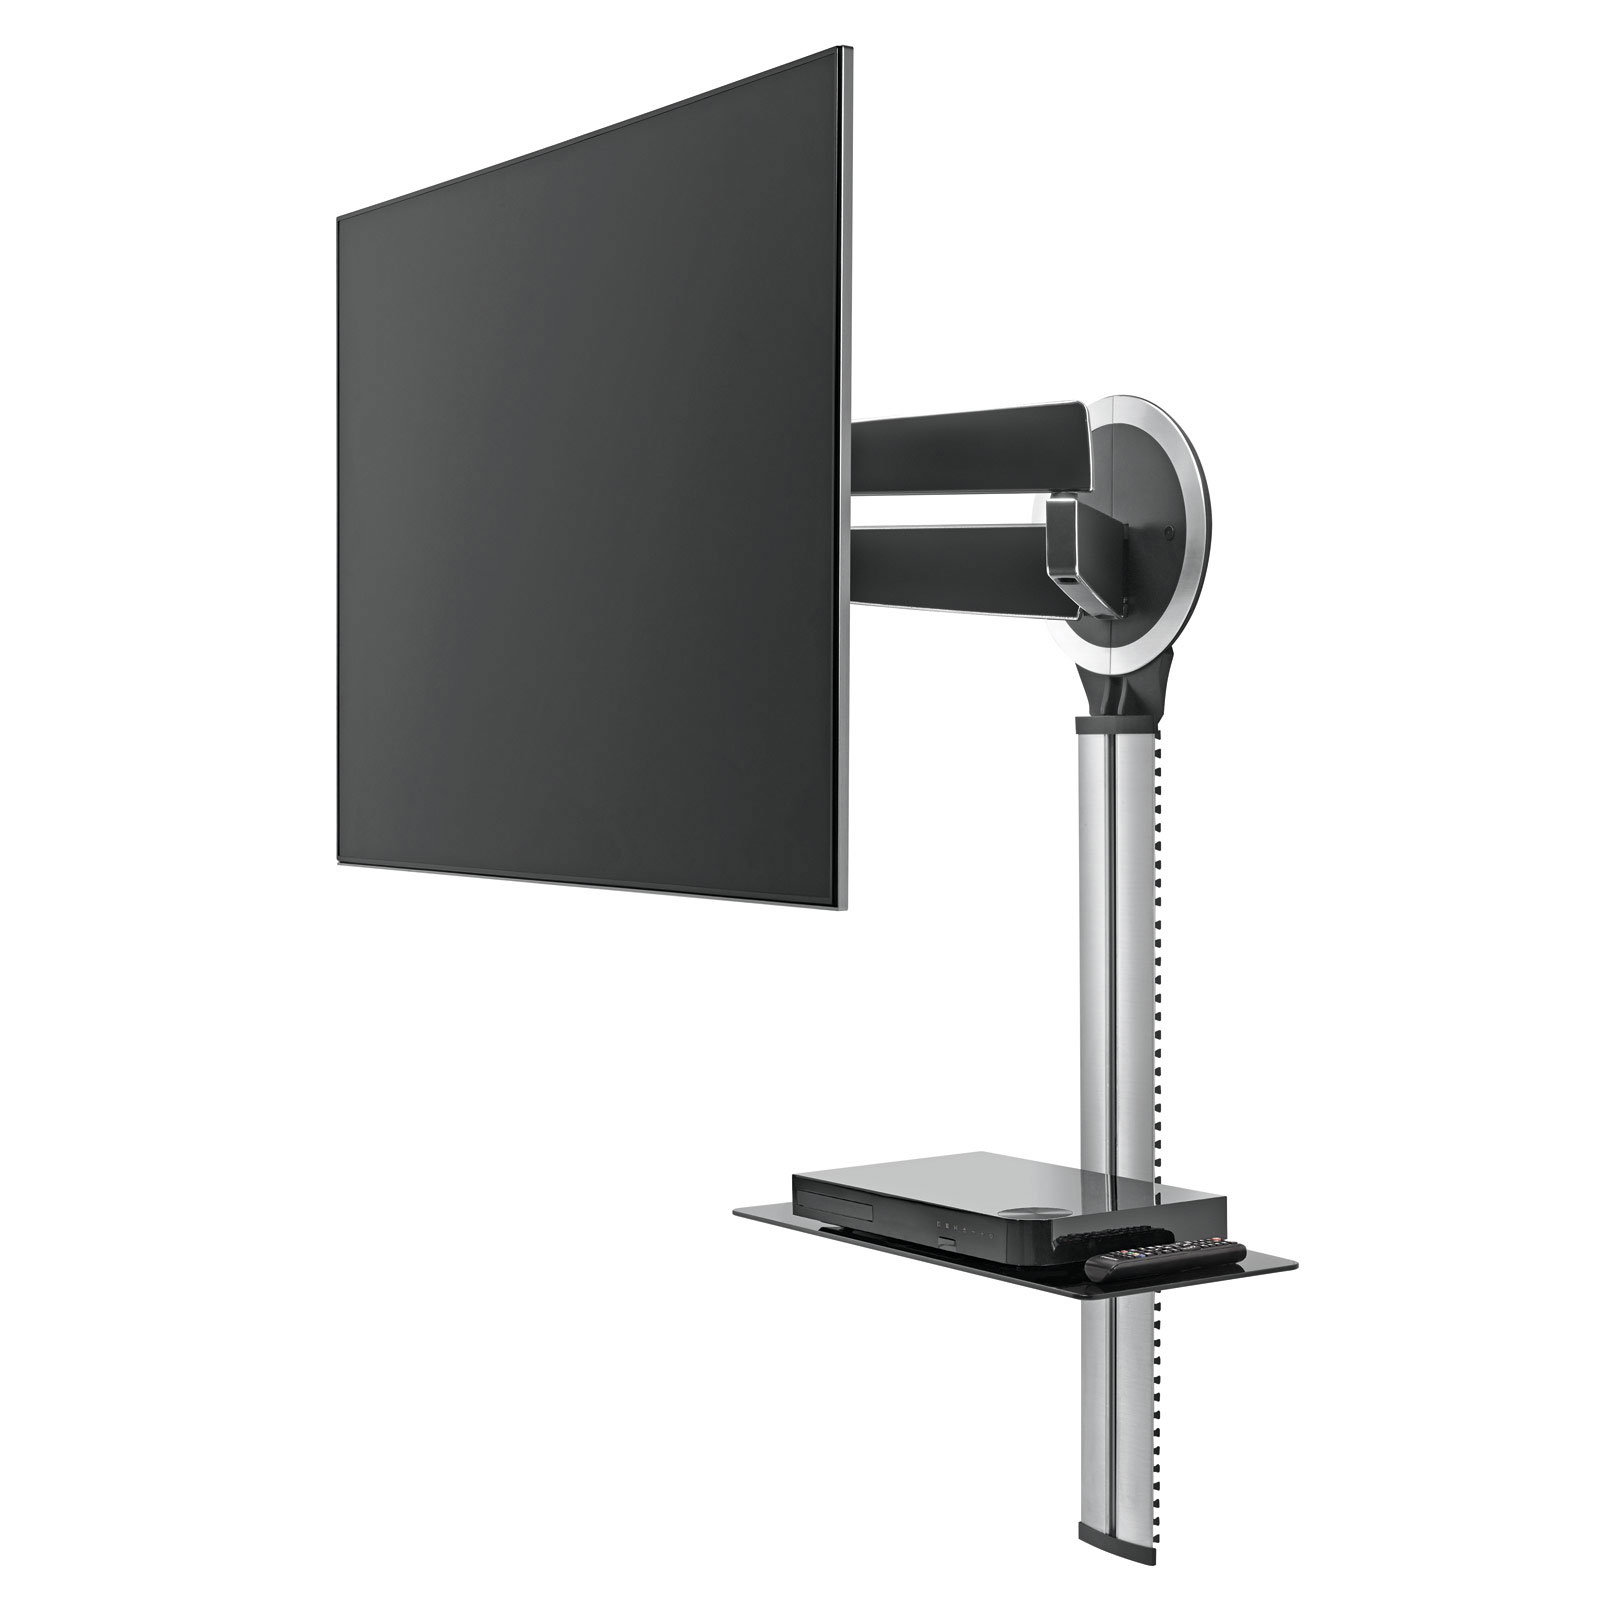 Support mural tv avec etagere - Support mural tv avec tablette ...